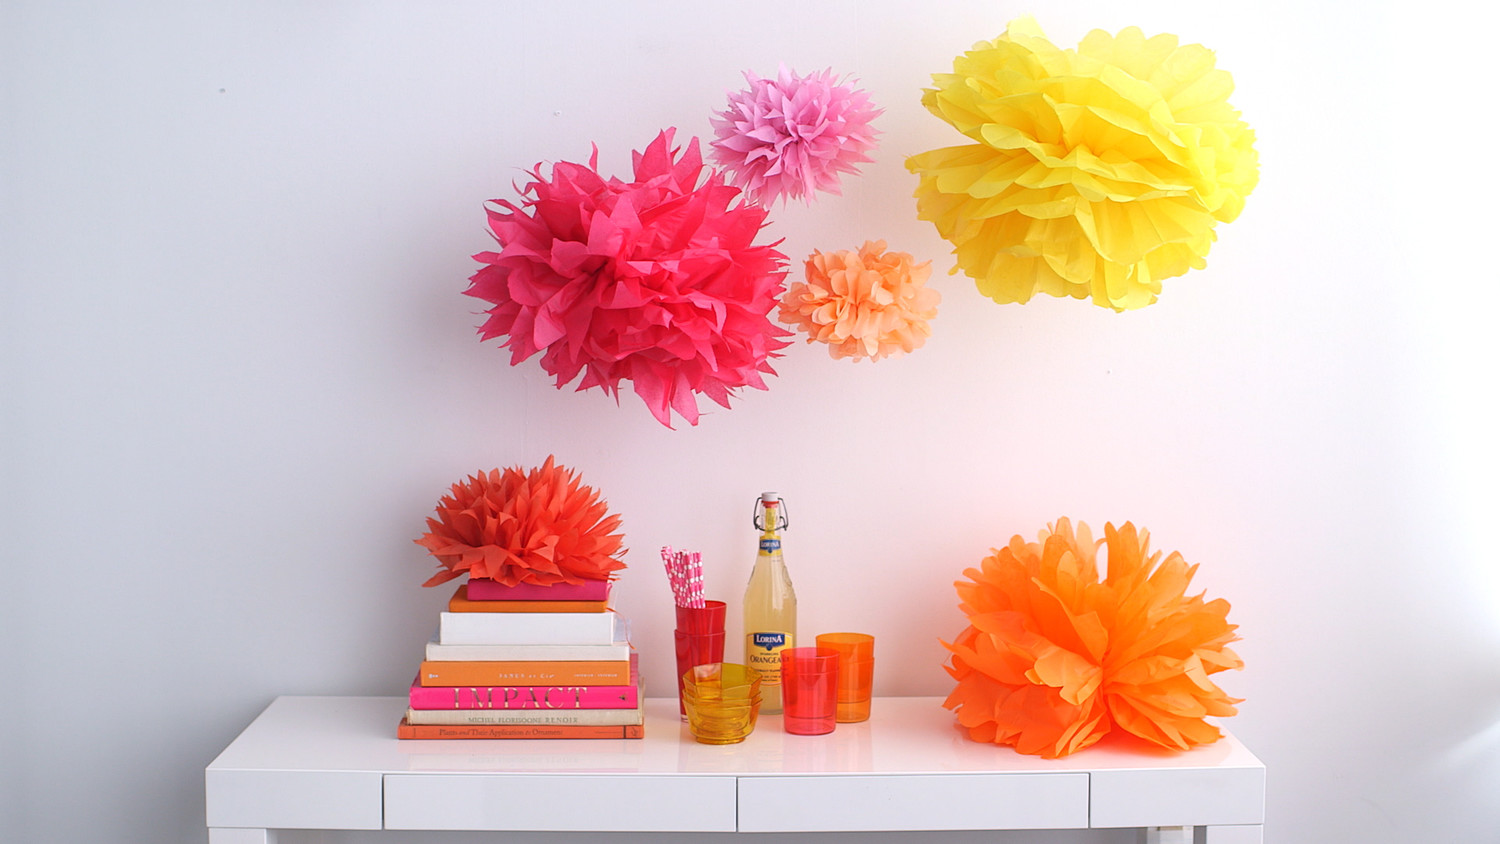 Video how to make paper flowers with livia cetti martha stewart related videos mightylinksfo Image collections